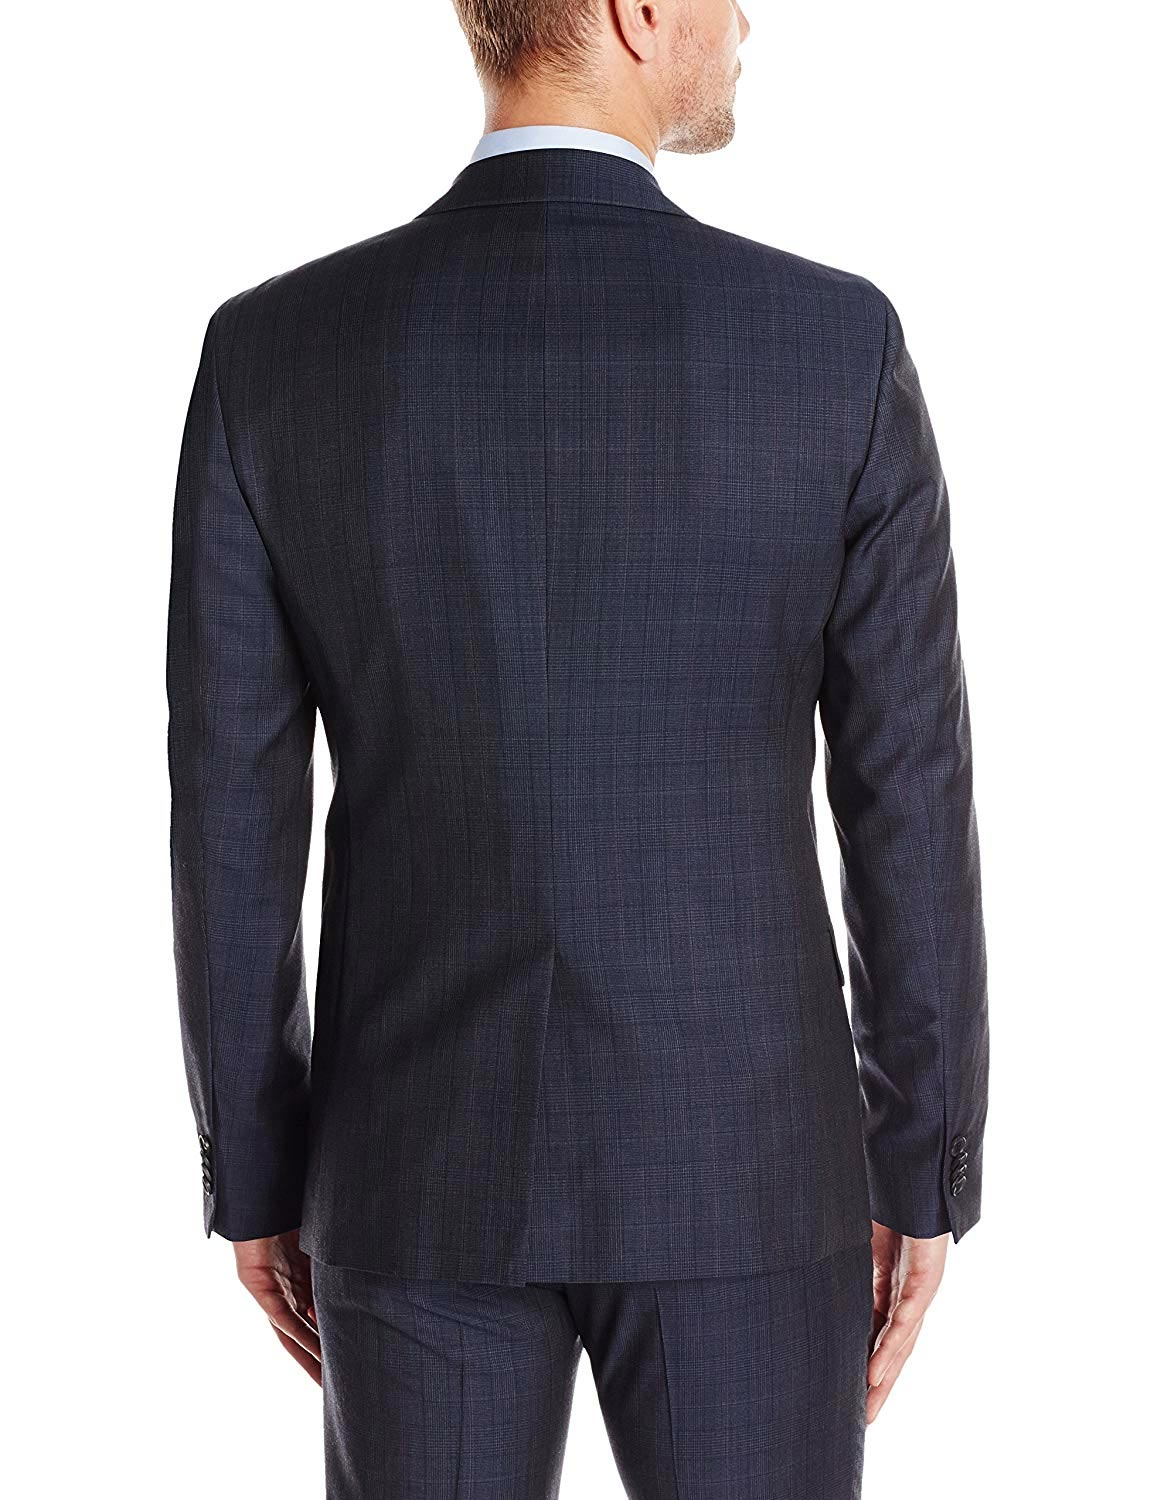 acf20a15268 ... Picture 2 of 3; Picture 3 of 3. Theory Mens Slim Fit Malcolm Ritland  Wool Plaid Jacket ...